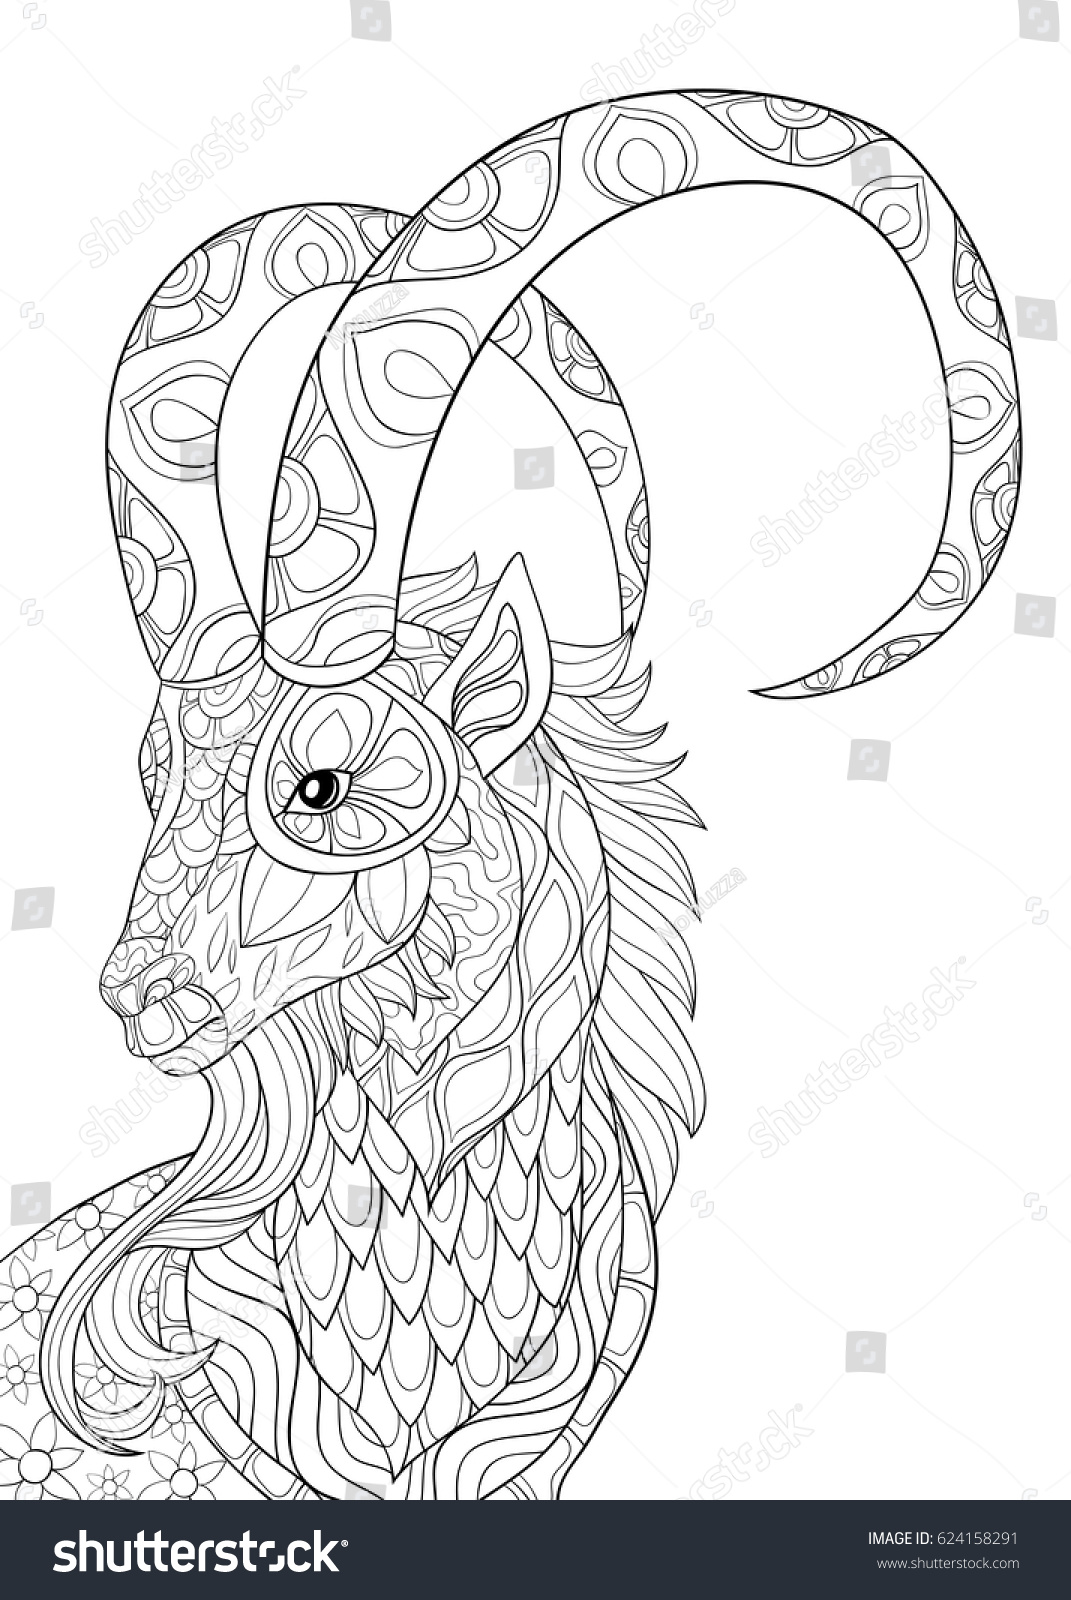 Adult Coloring Pages Goat Head